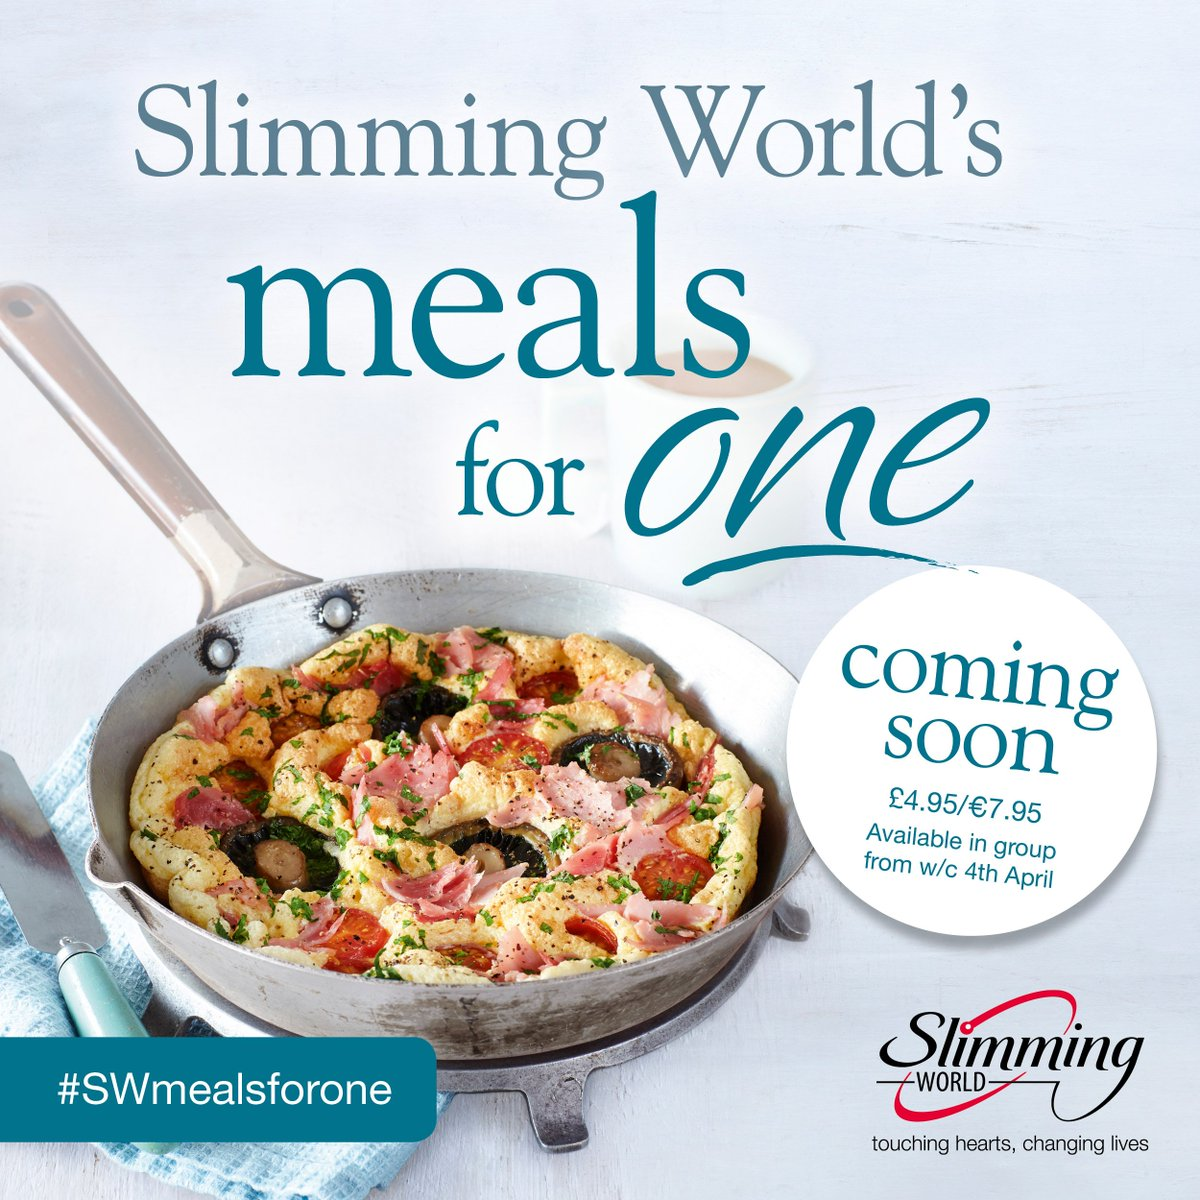 Slimming world on twitter packed with 60 super simple Slimming world recipes for 1 person